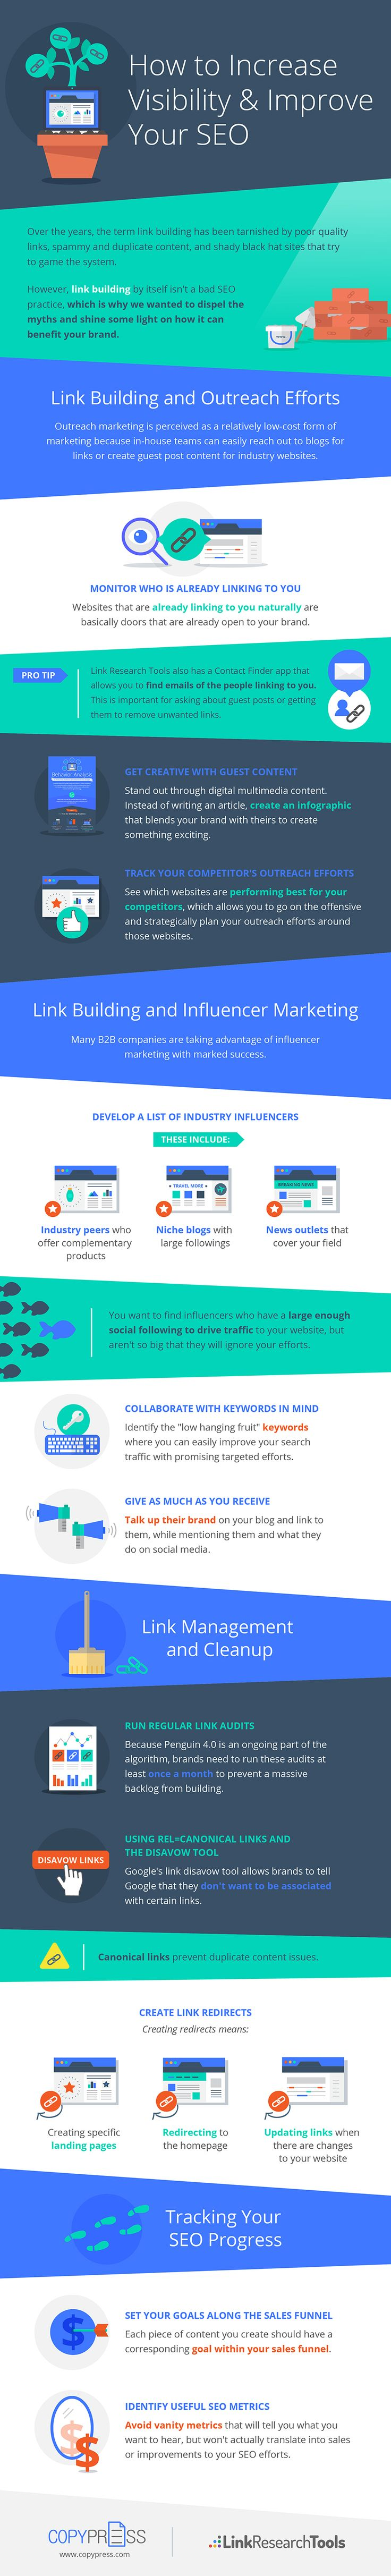 Advanced #SEO - 11 Link Building Tips for Higher Website Rankings #Infographic